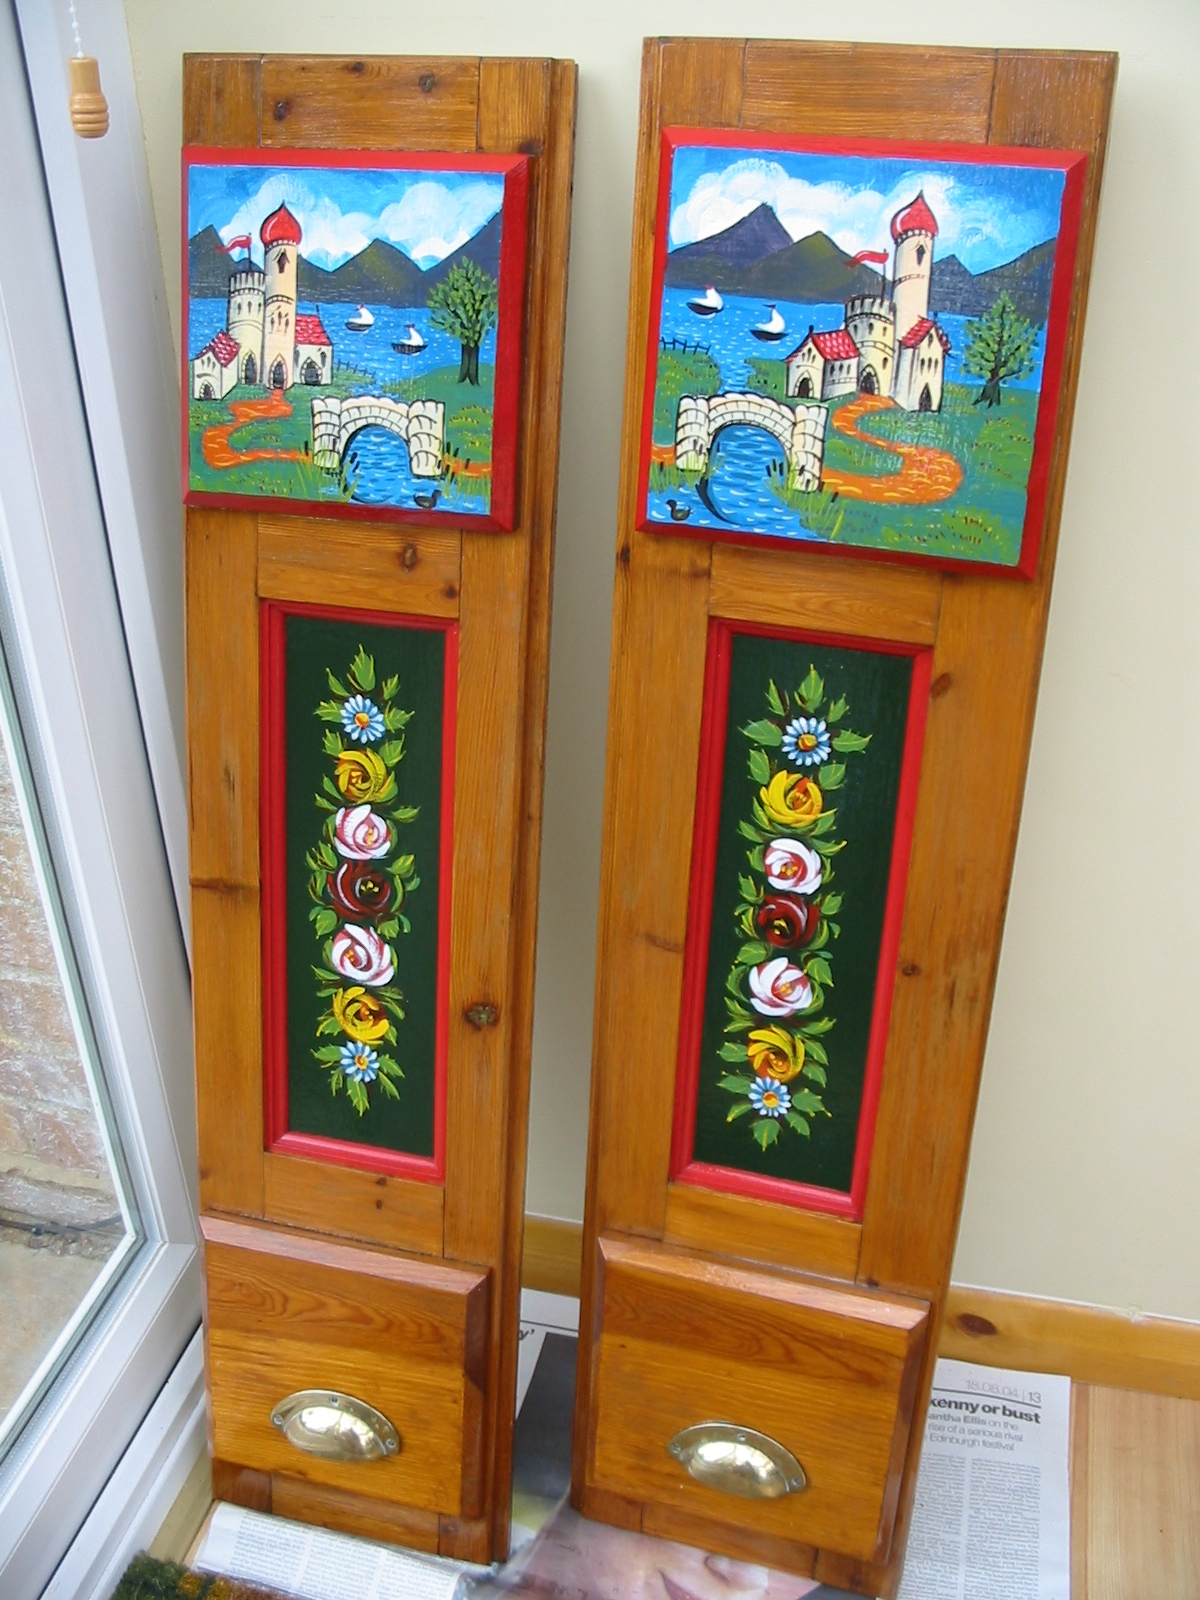 Albertu0027s Rear Cabin Door Decoration & Narrow Boat Albert: New Blog Layout and Theme